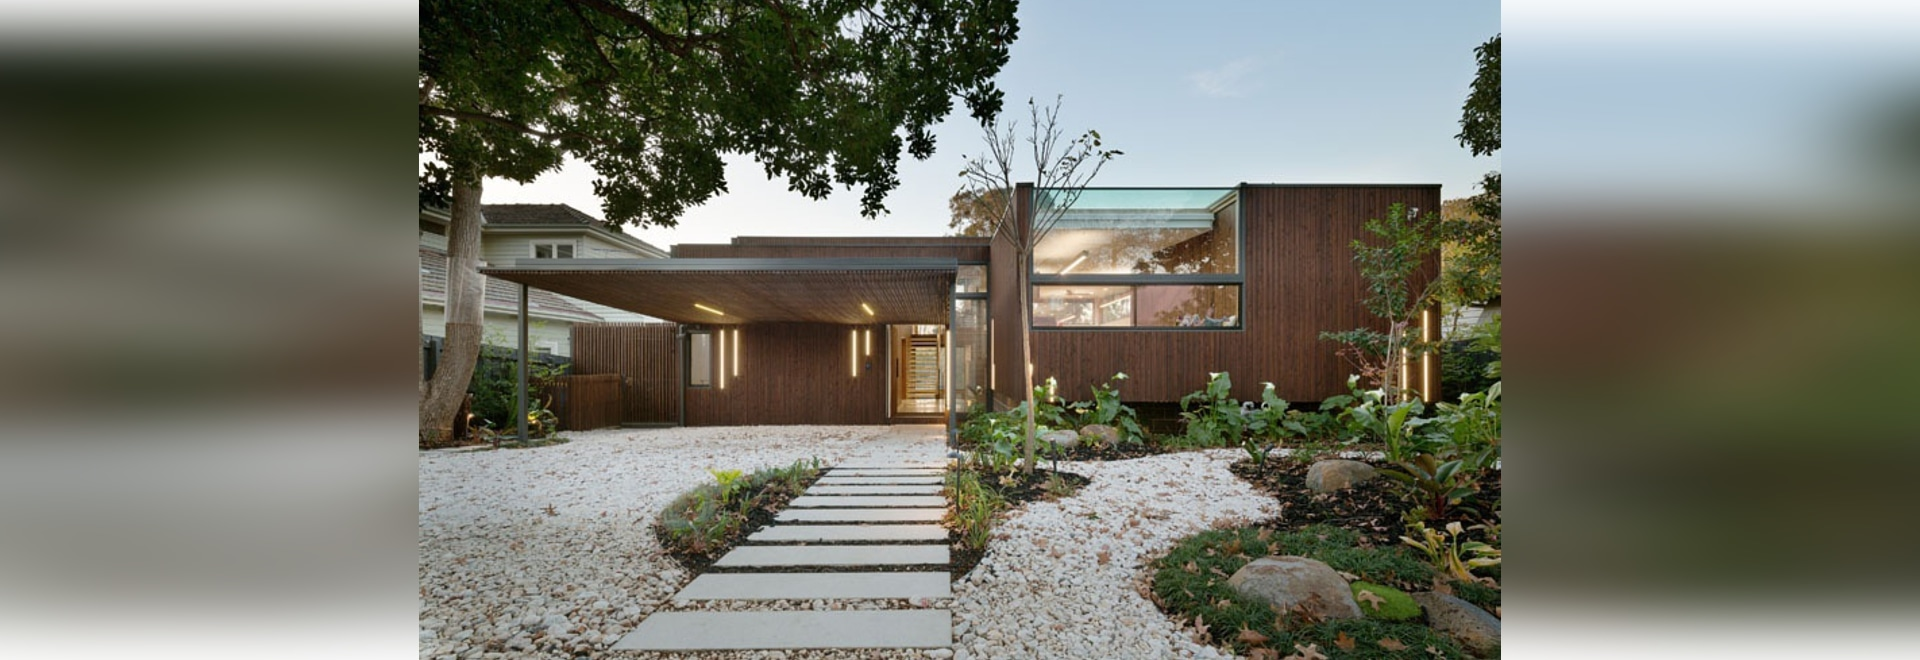 The Front Of This House Appears Modest And Compact, But It Conceals A Much Larger Interior